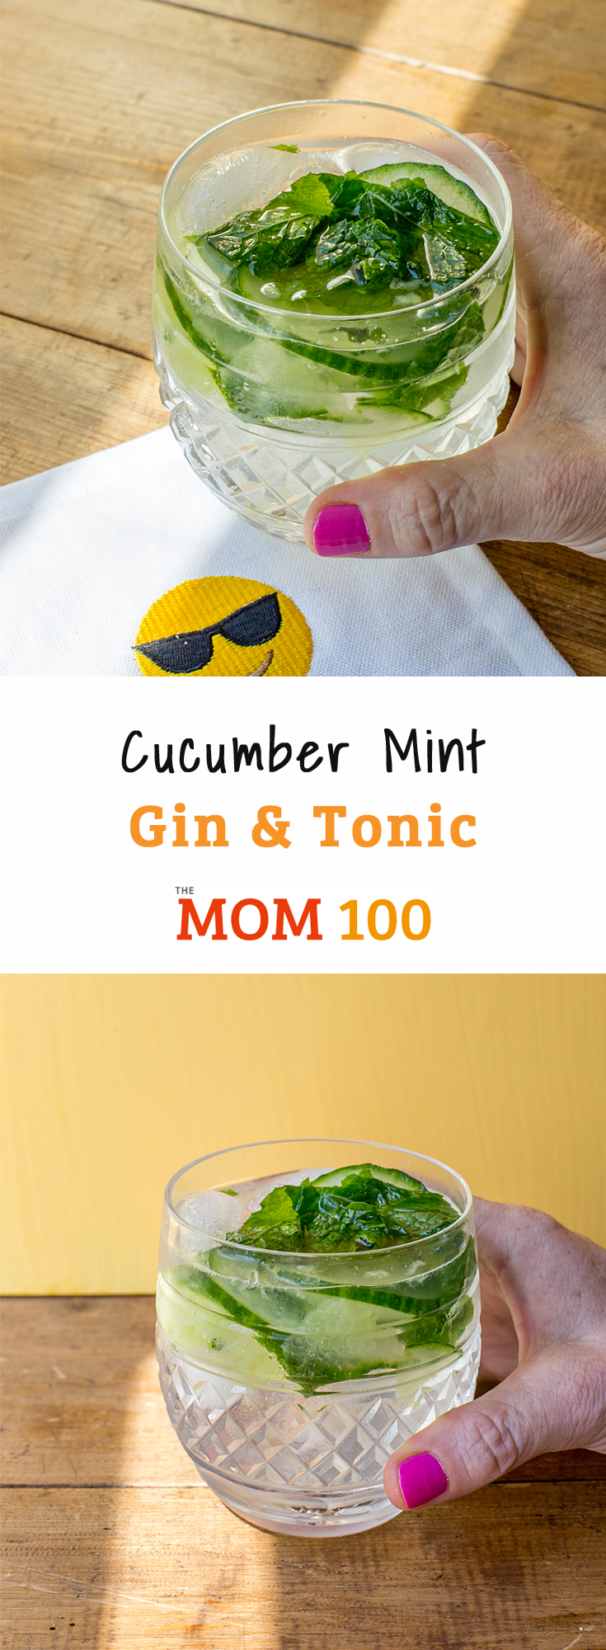 gin and tonic with mint and cucumber for mom 100